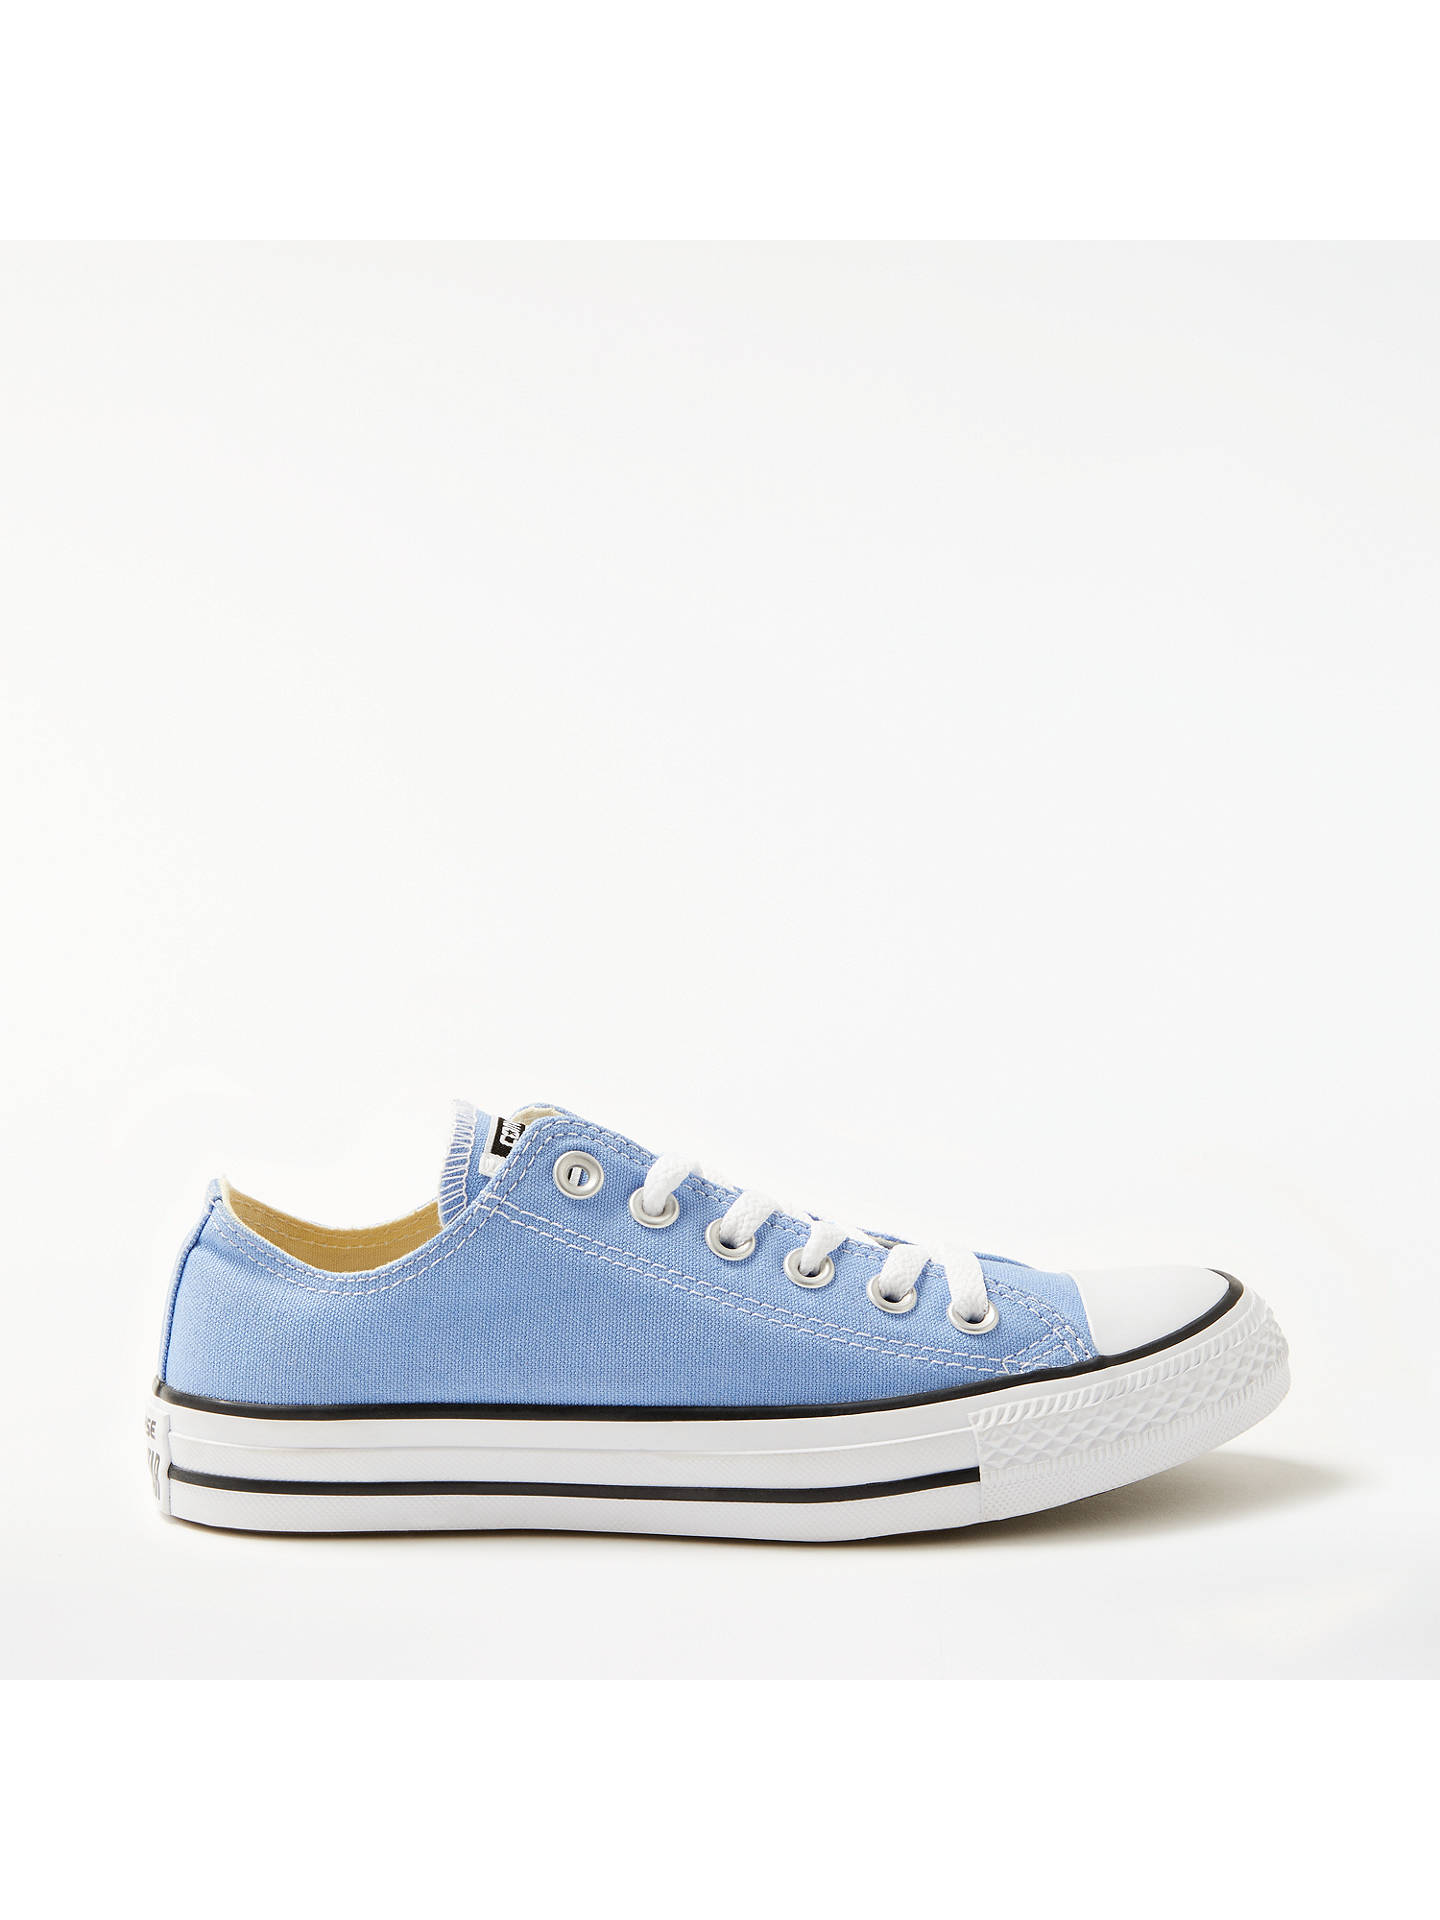 f60fa29e7403 Converse Chuck Taylor All Star Women s Canvas Ox Low-Top Trainers at ...